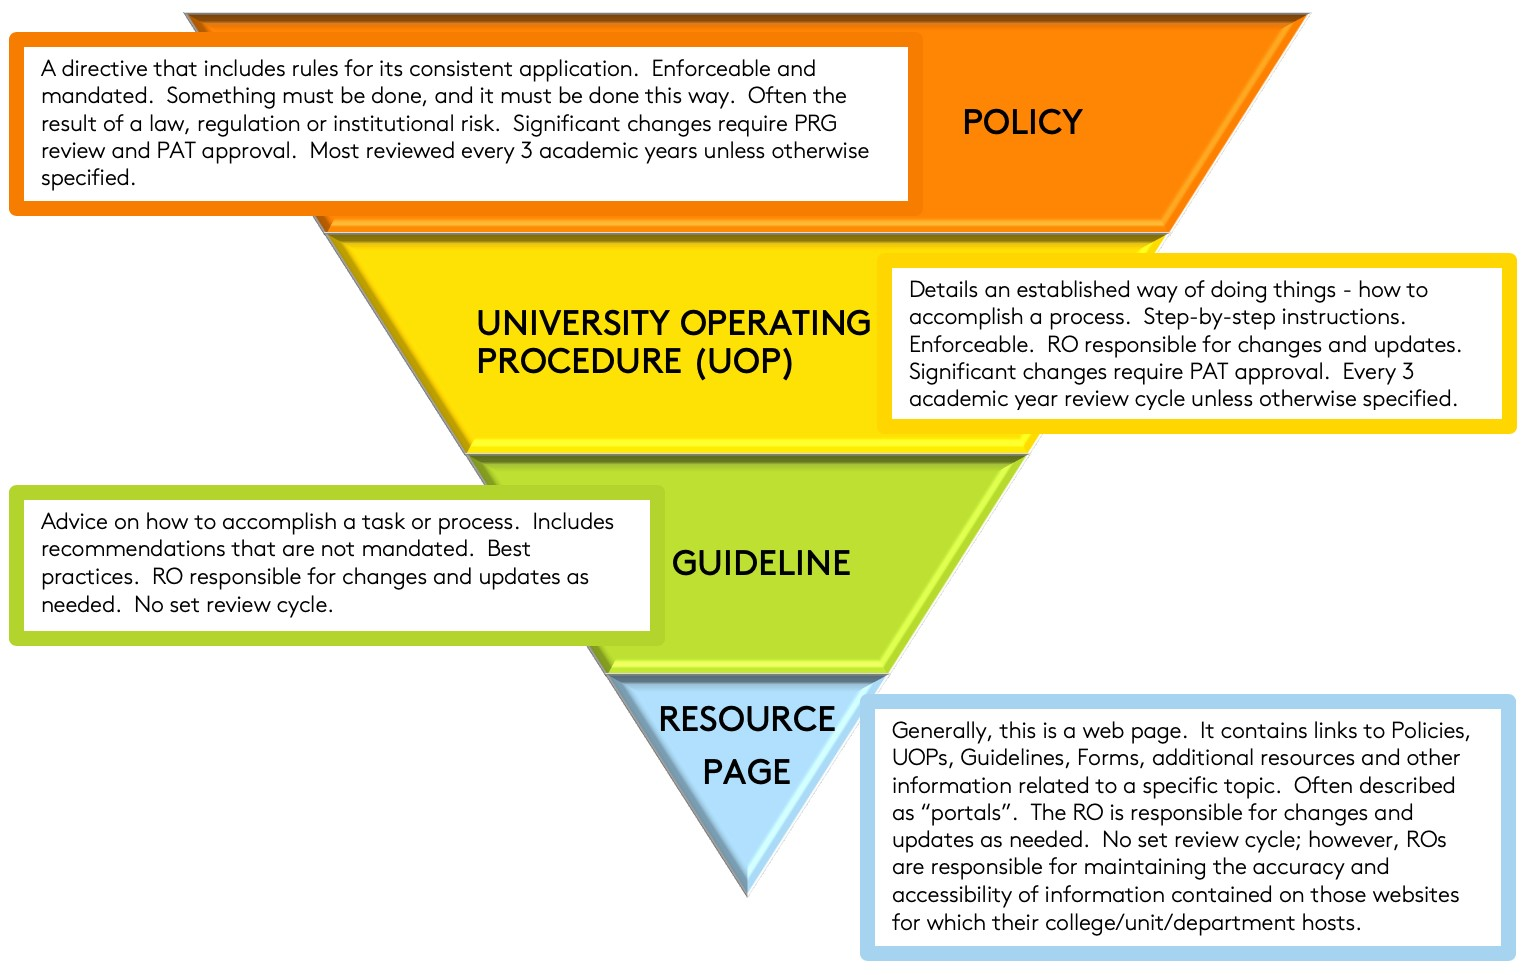 Description of four document types: Policy, UOP, Guidelines, and Resource Webpage